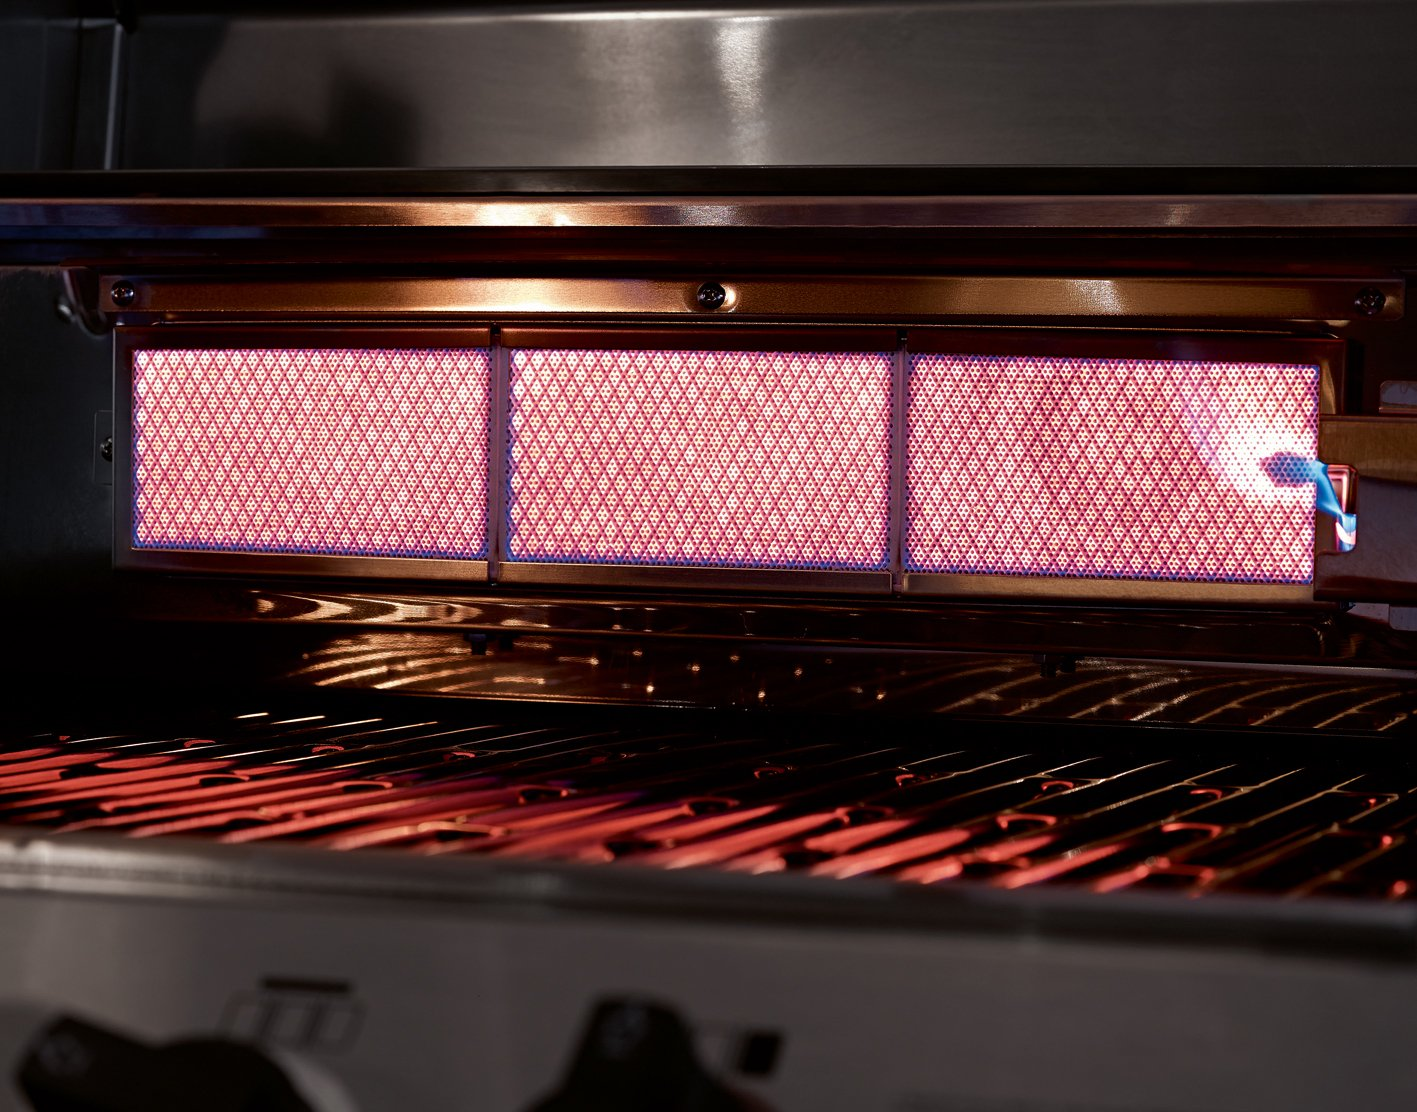 Enders Gasgrill Simple Clean : Enders technologien bbq technologien für höchsten outdoor komfort